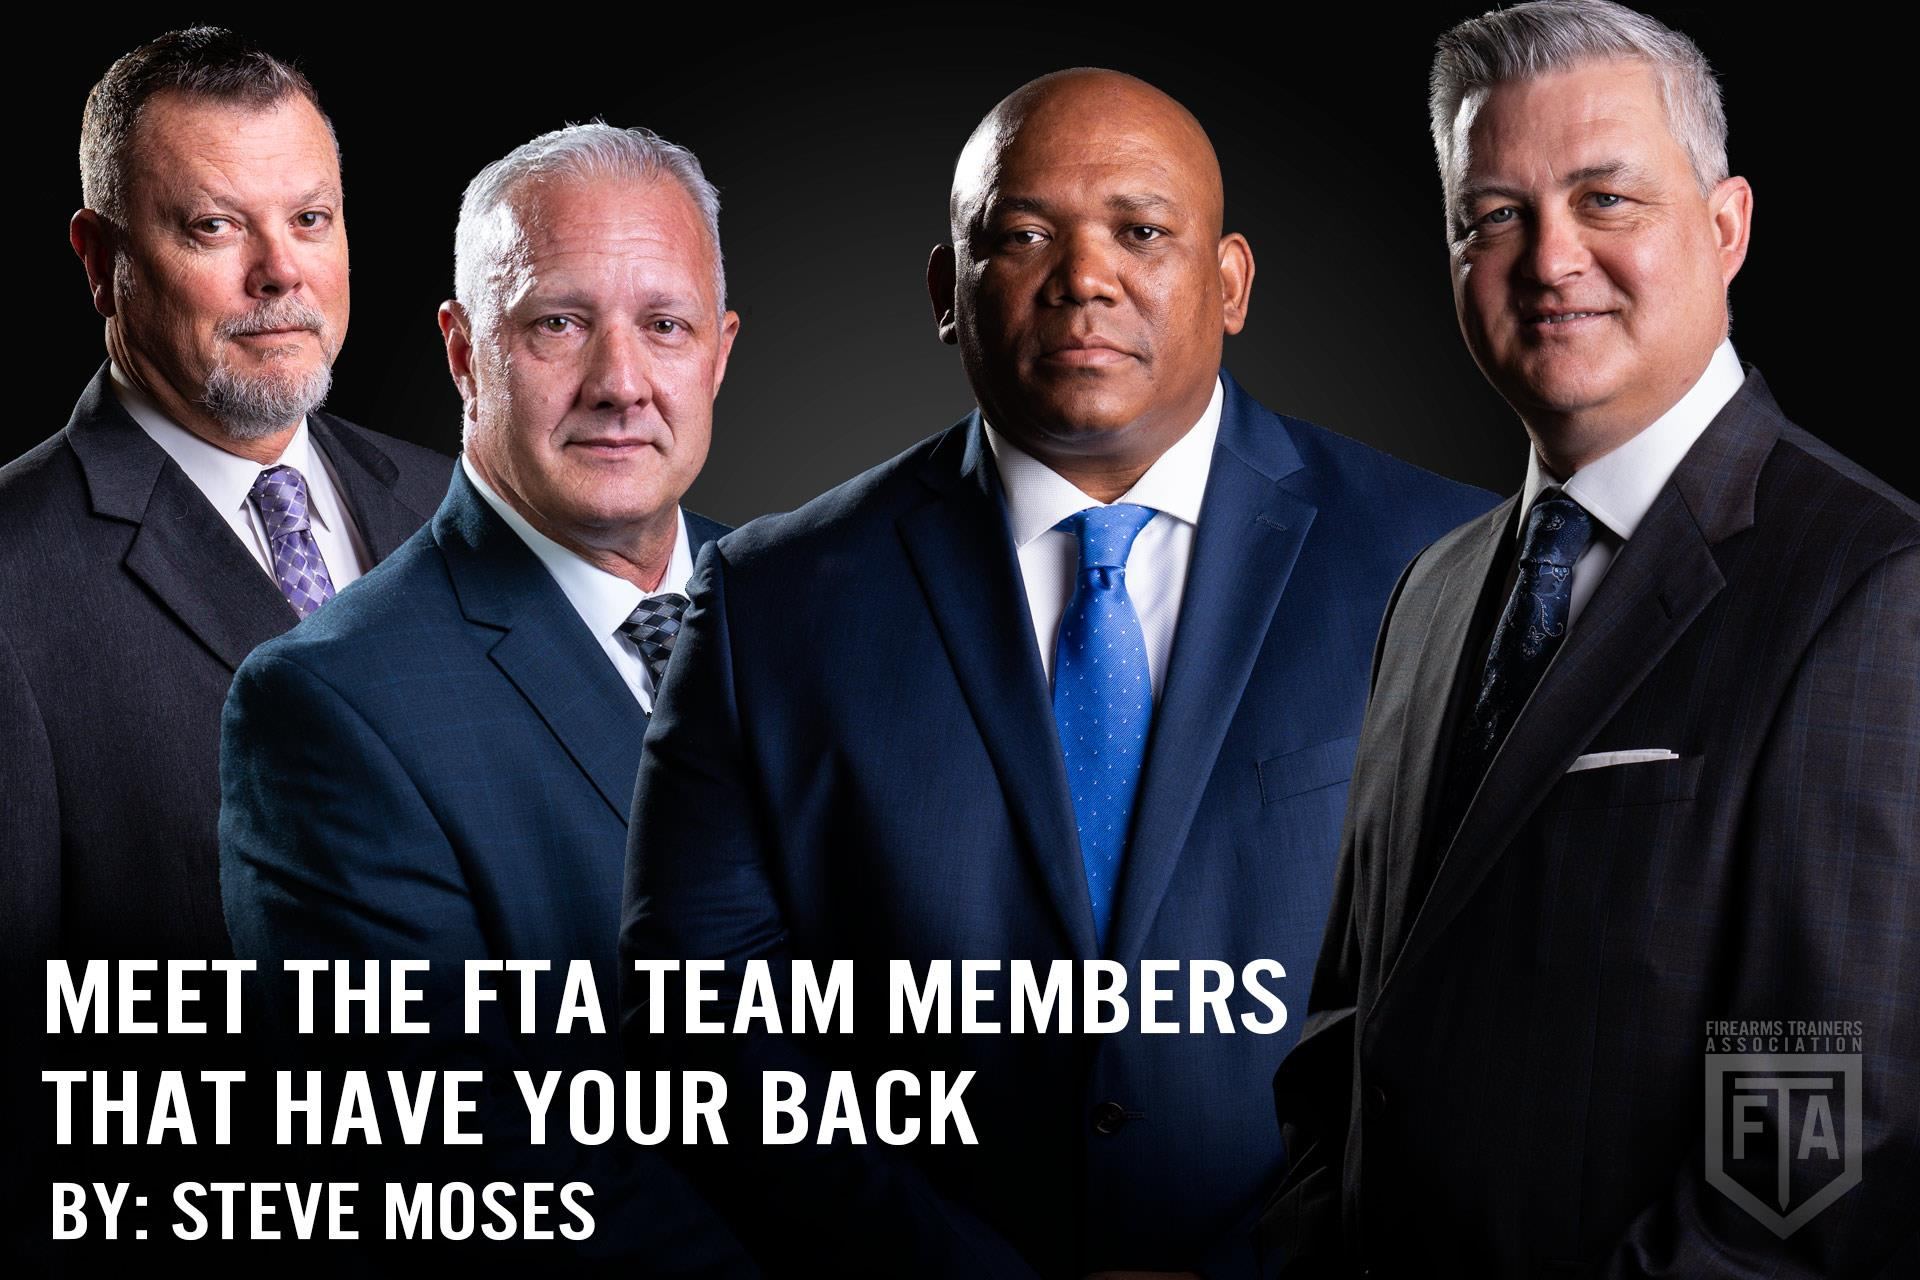 MEET THE FTA TEAM MEMBERS THAT HAVE YOUR BACK